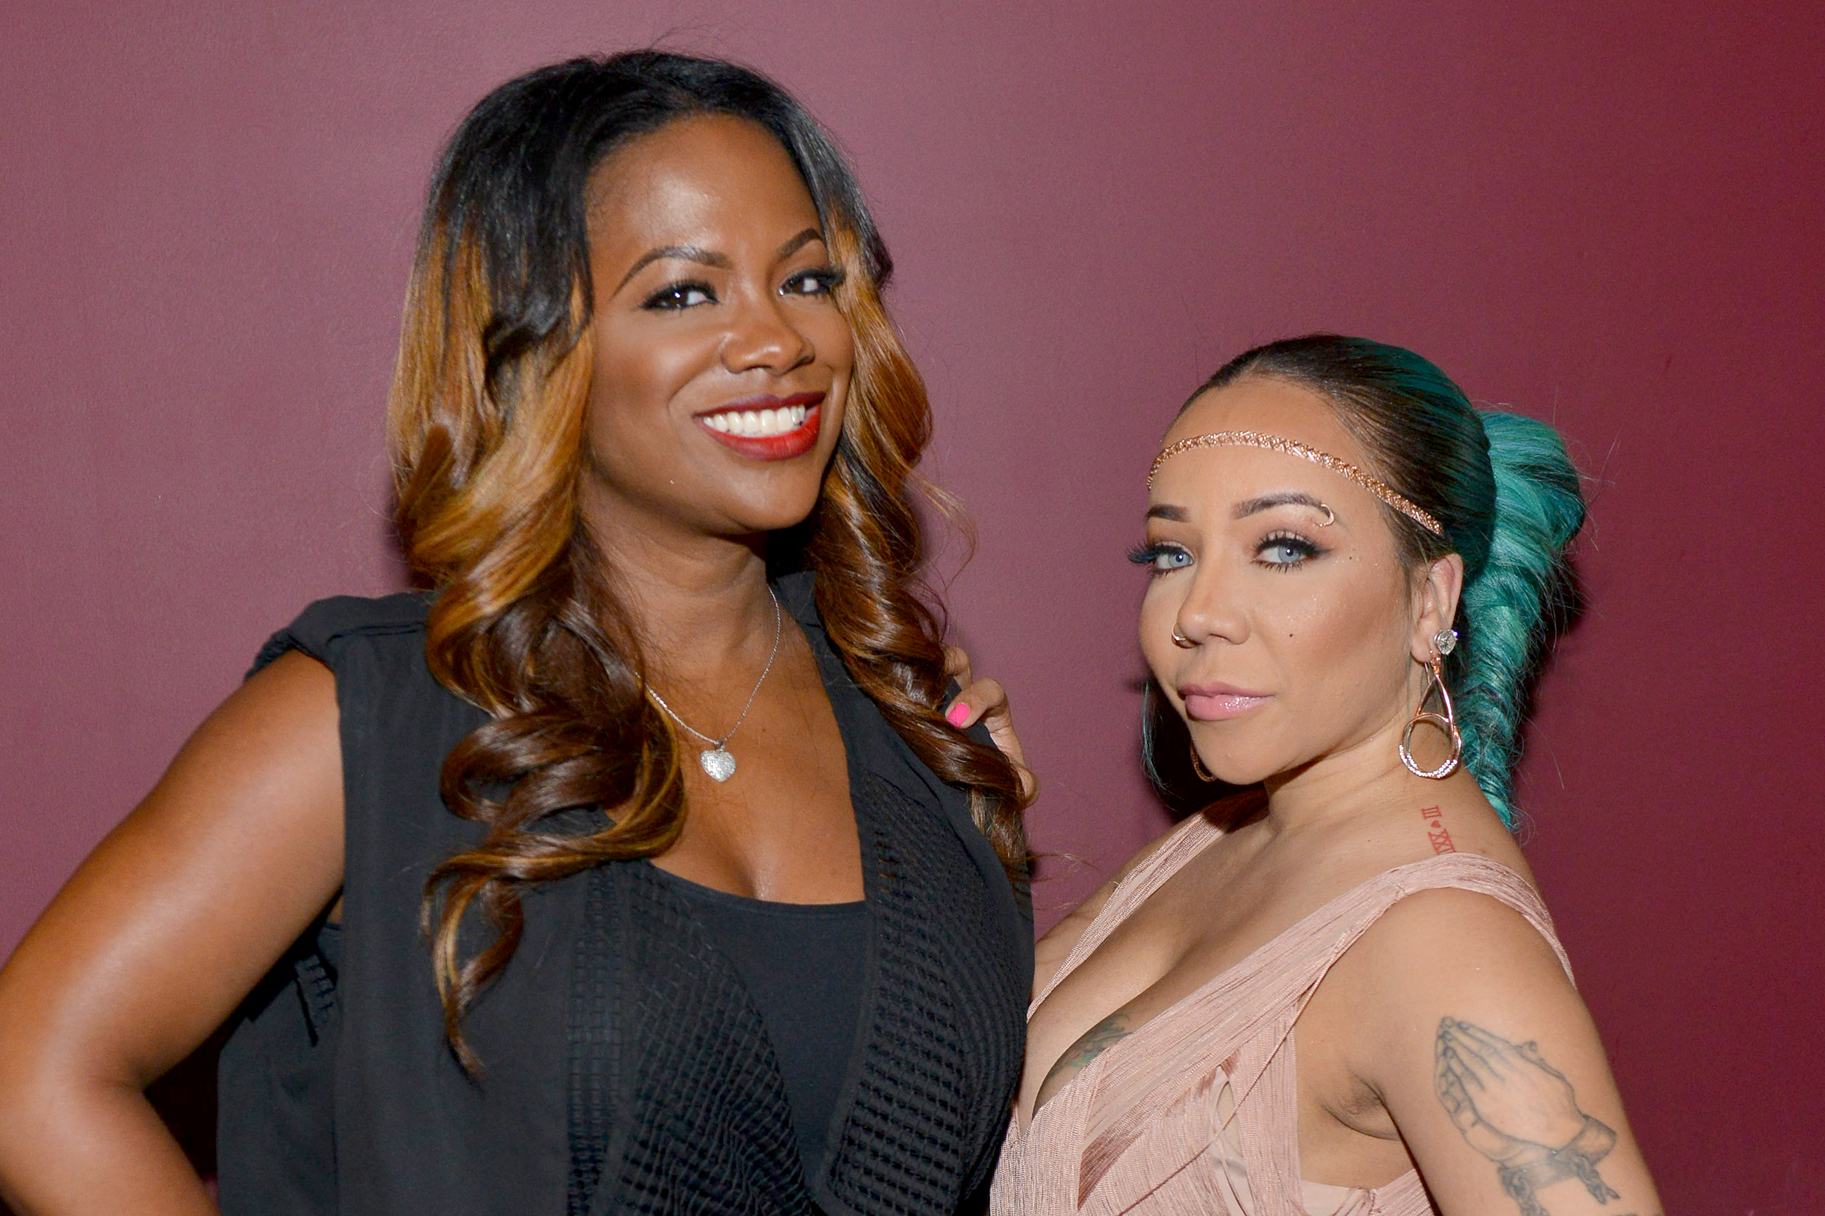 tiny-harris-celebrates-kandi-burruss-birthday-with-an-emotional-message